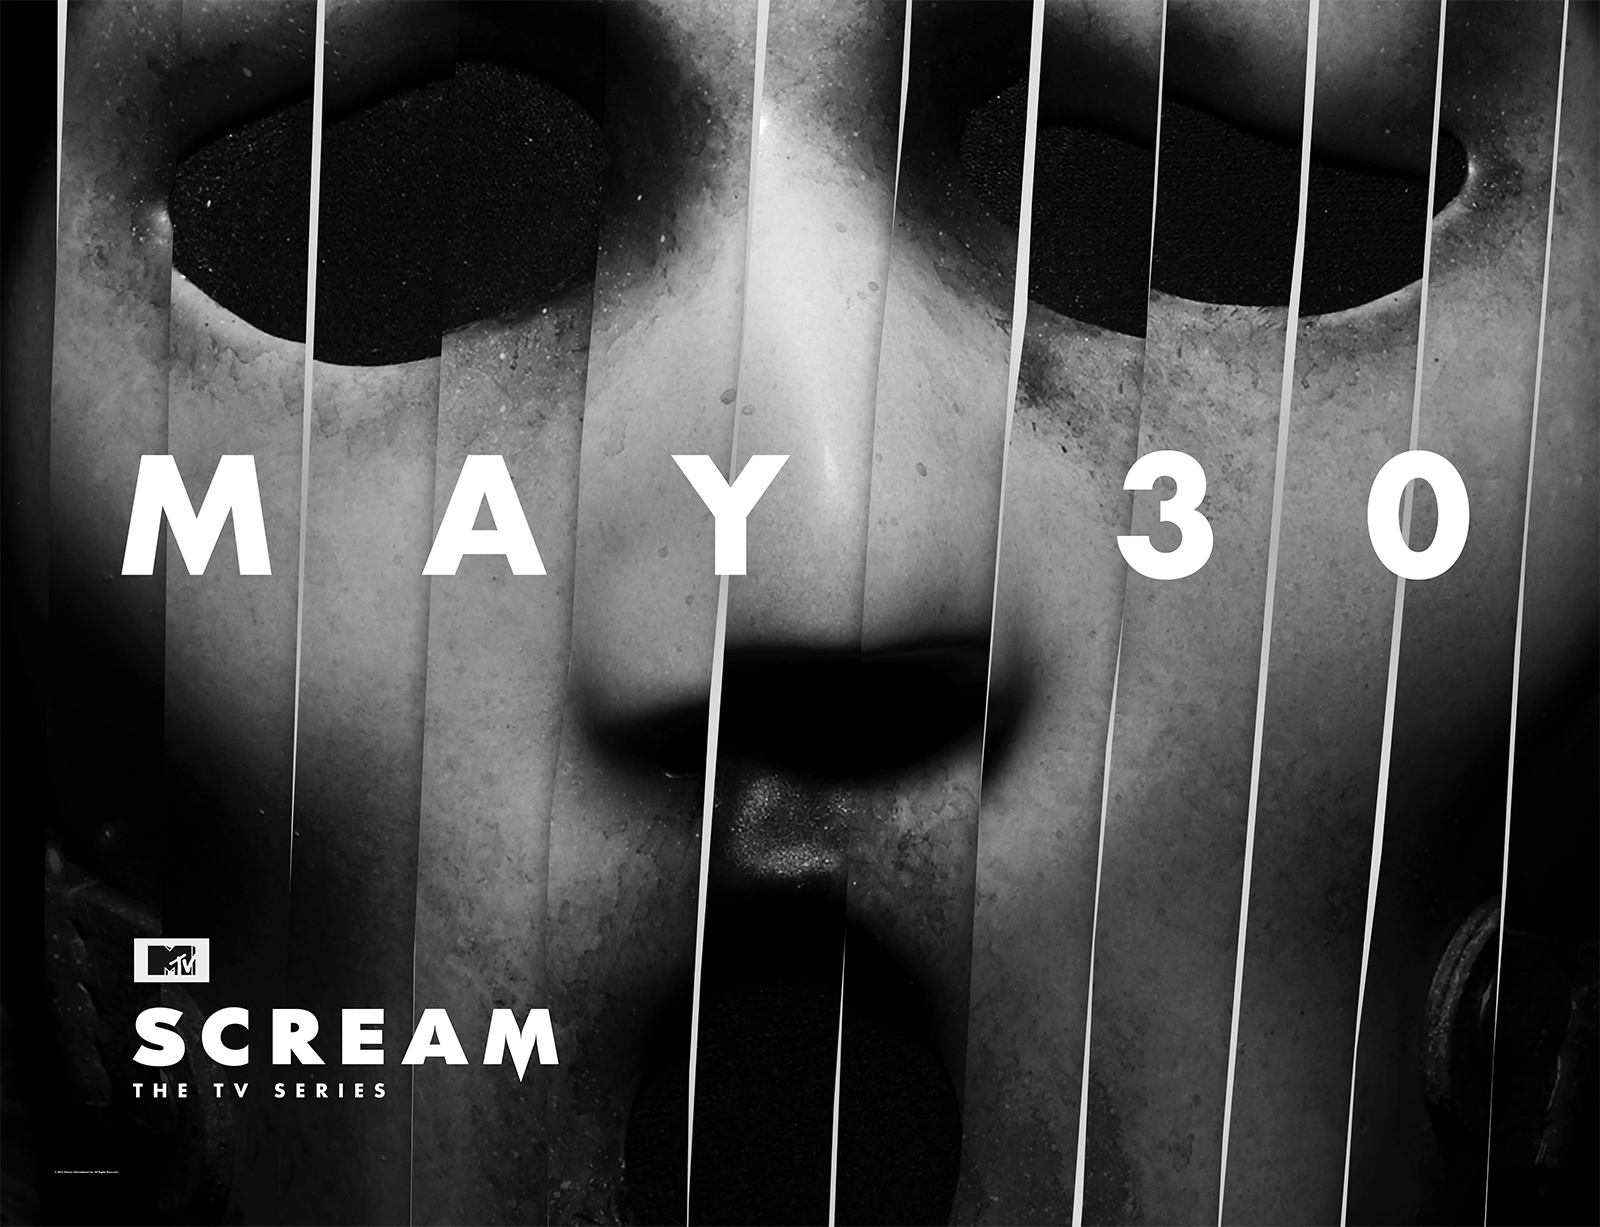 scream-season-2-subway